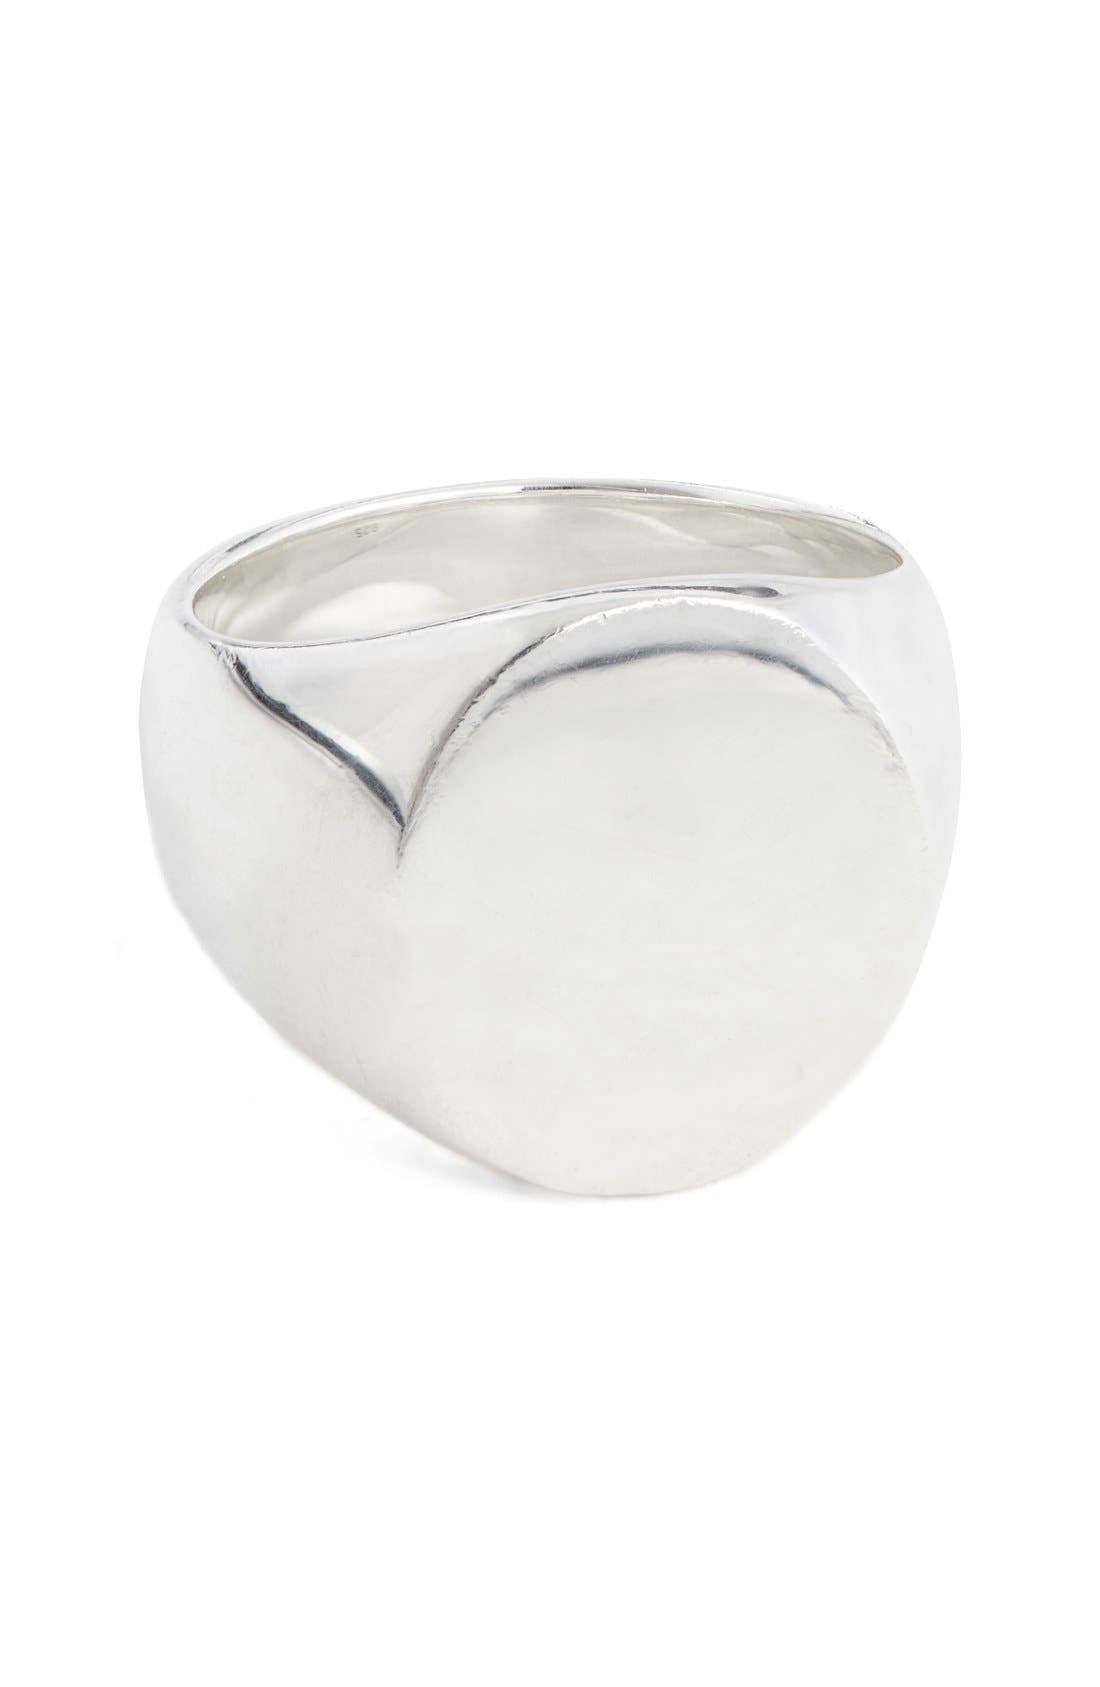 Alternate Image 1 Selected - Tom Wood 'Patriot Collection' Oval Signet Ring